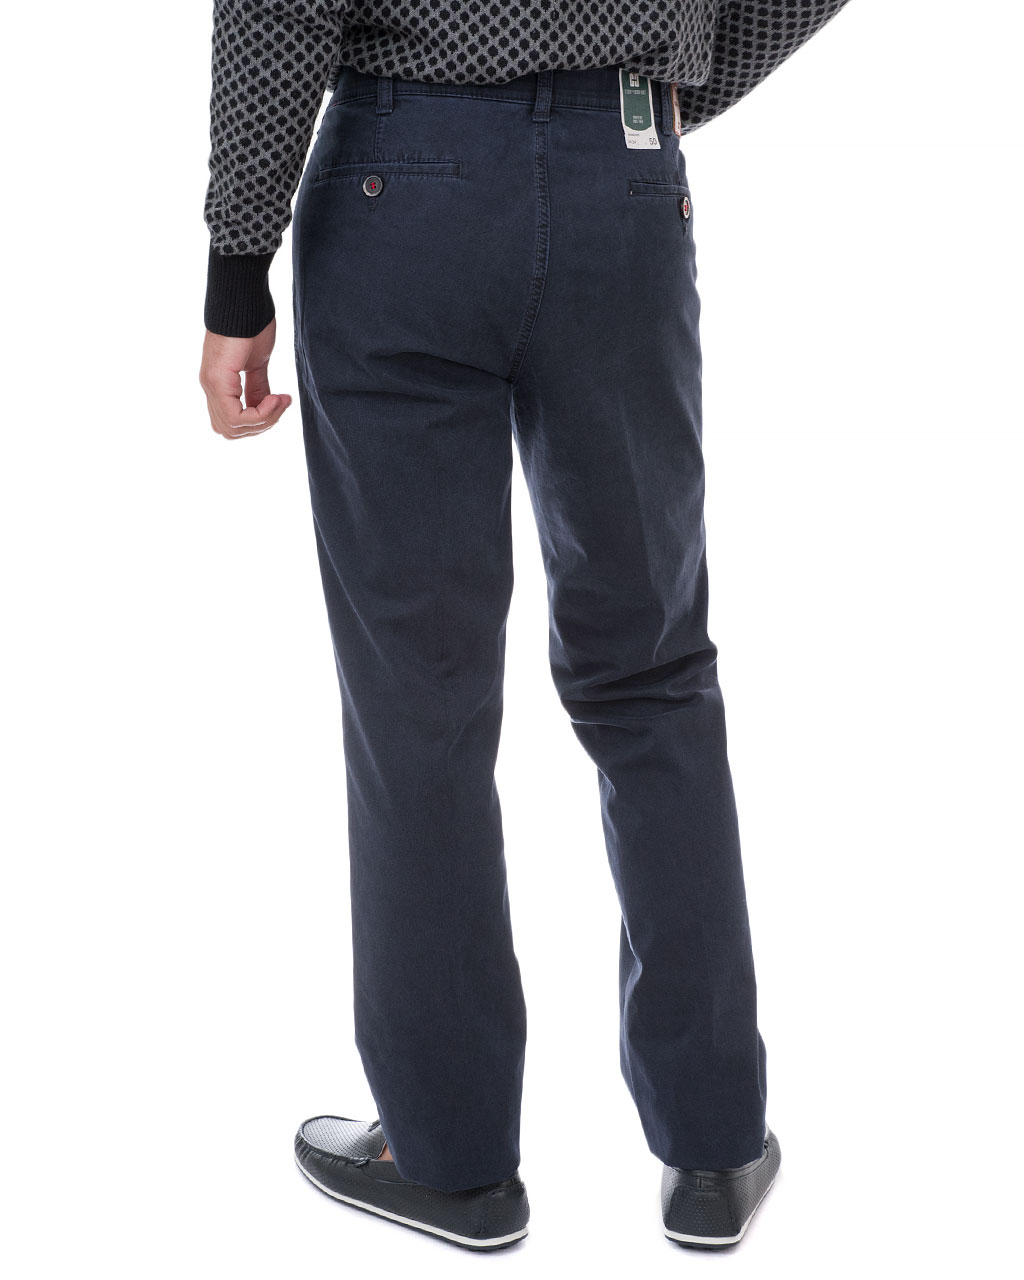 Men's trousers Garvey 6429-44/19-20 (5)